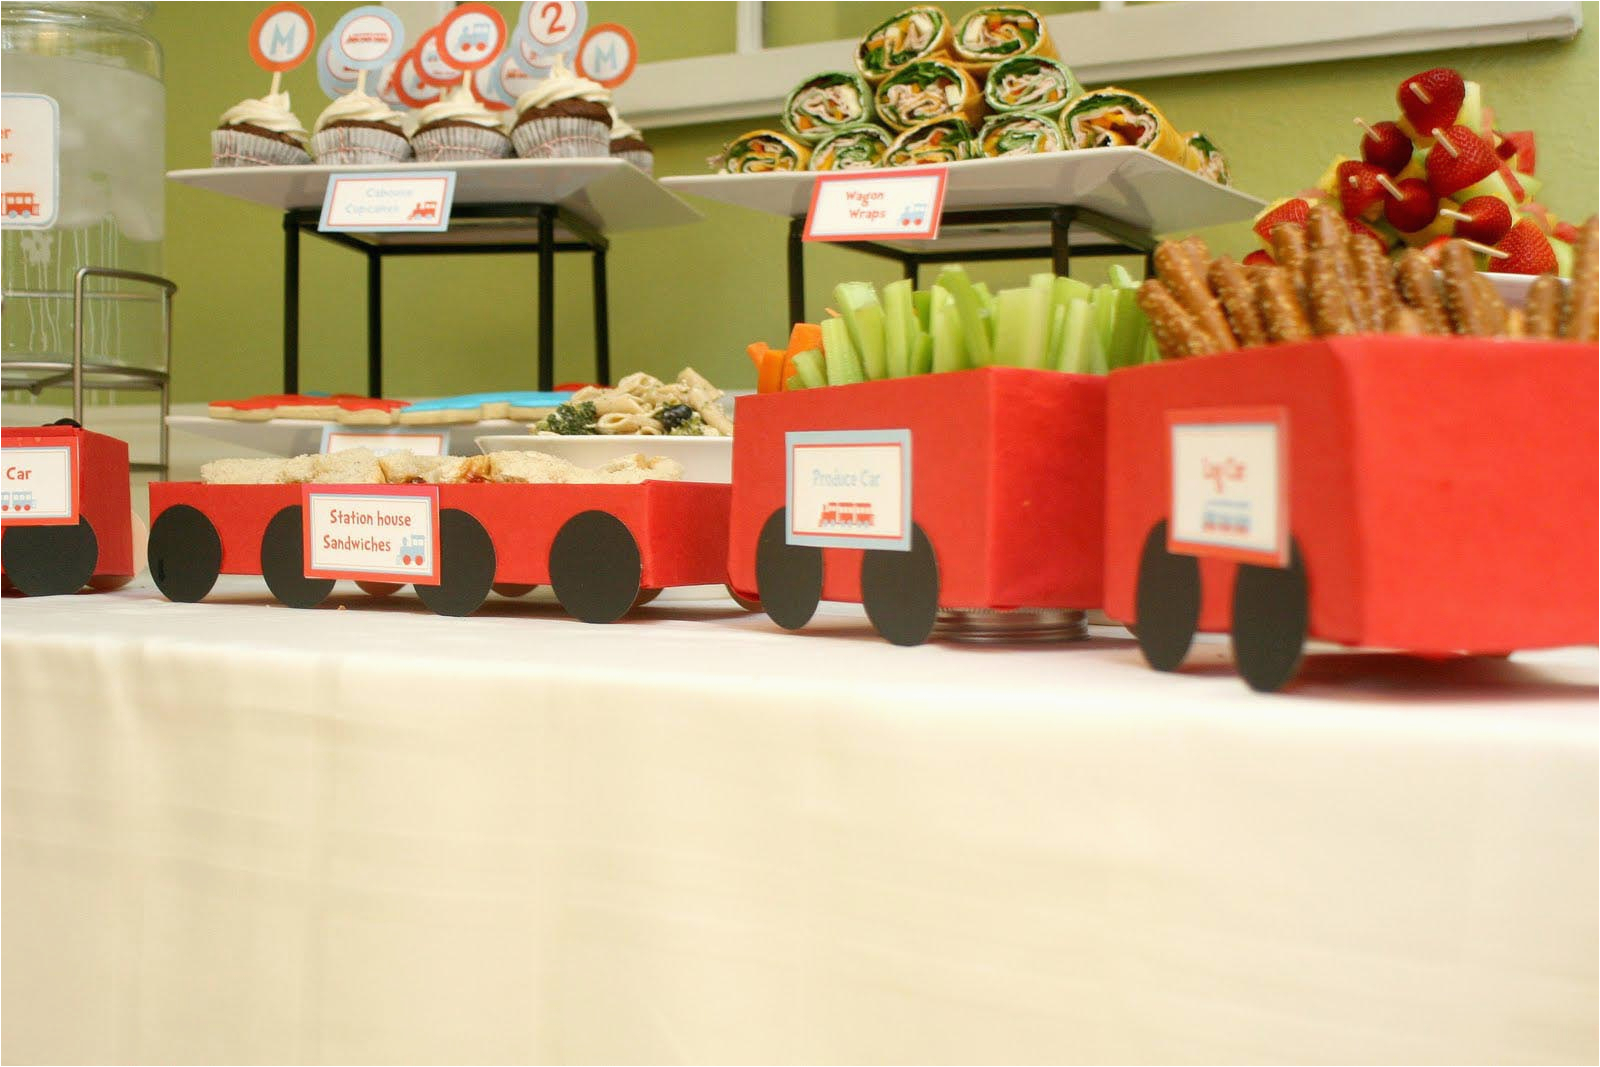 Train Decorations for Birthday Party Best Ideas for A Train Birthday Party Home Party Ideas